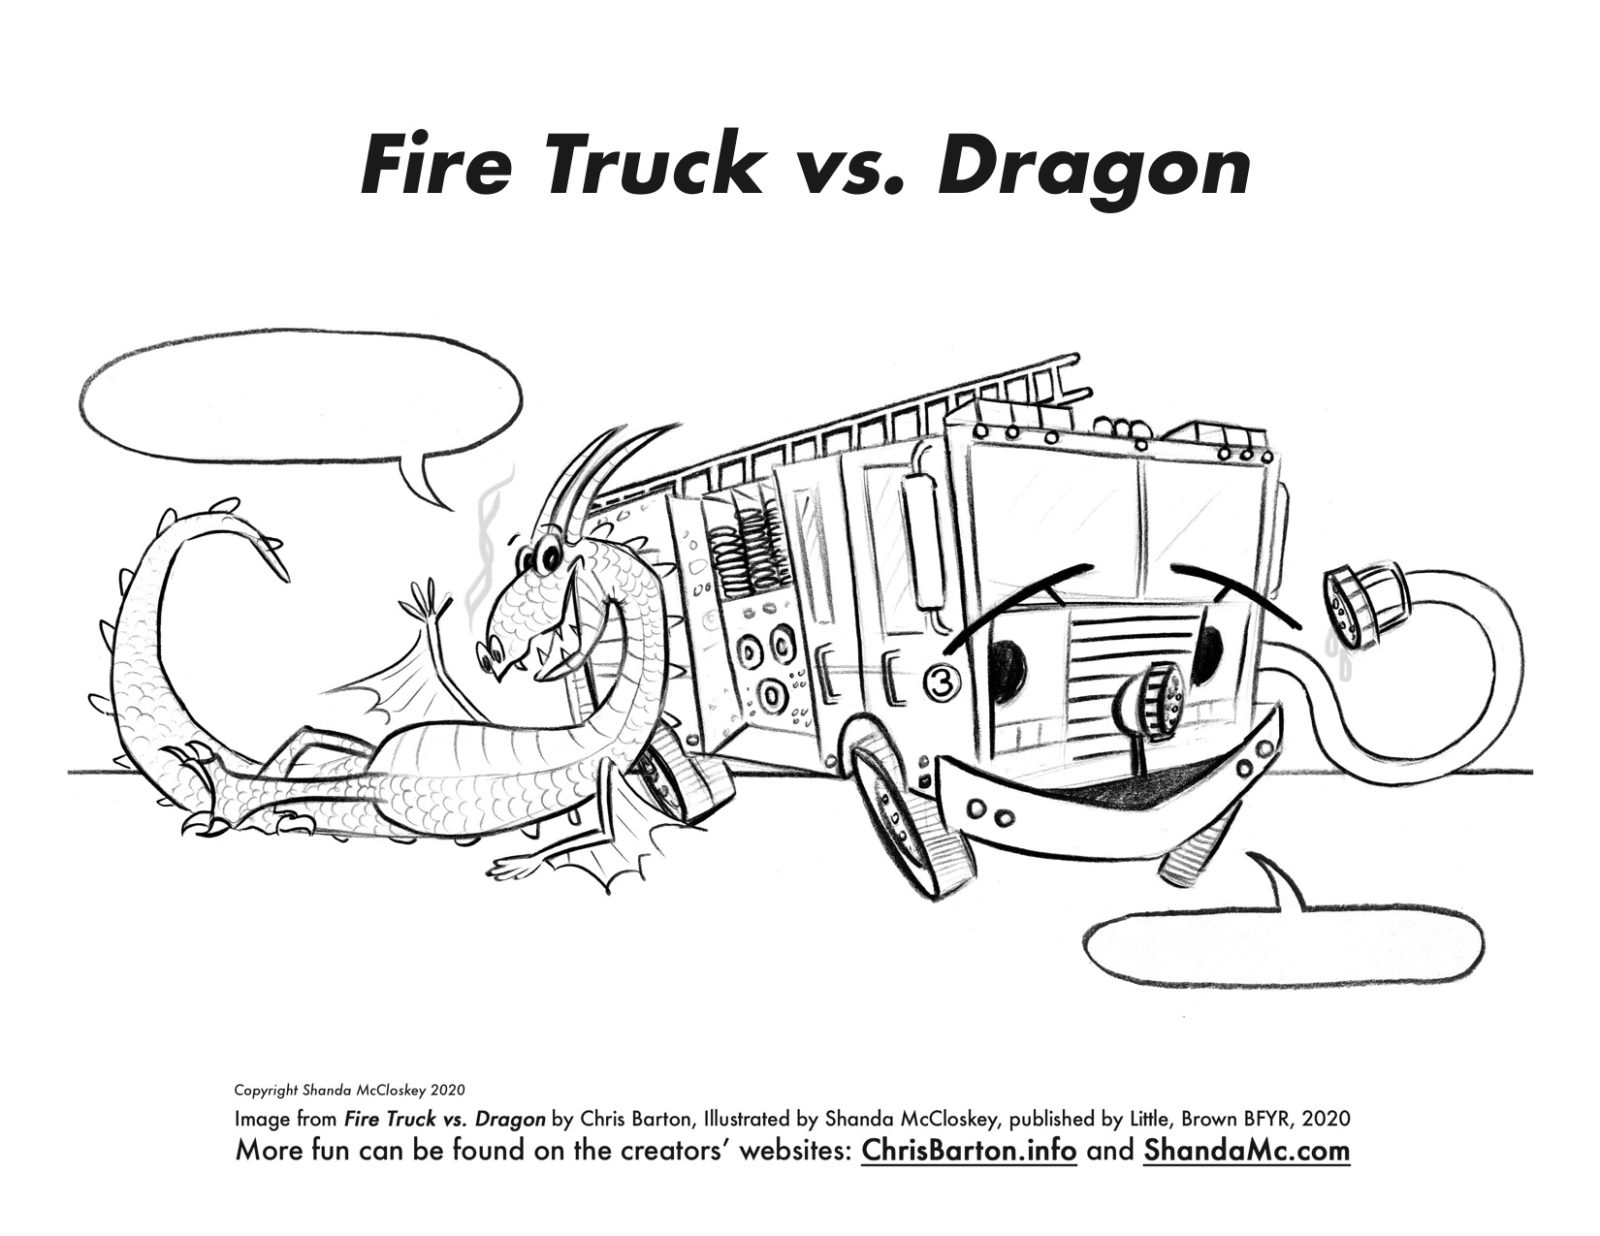 Fire Truck vs. Dragon coloring sheet waiving hello.